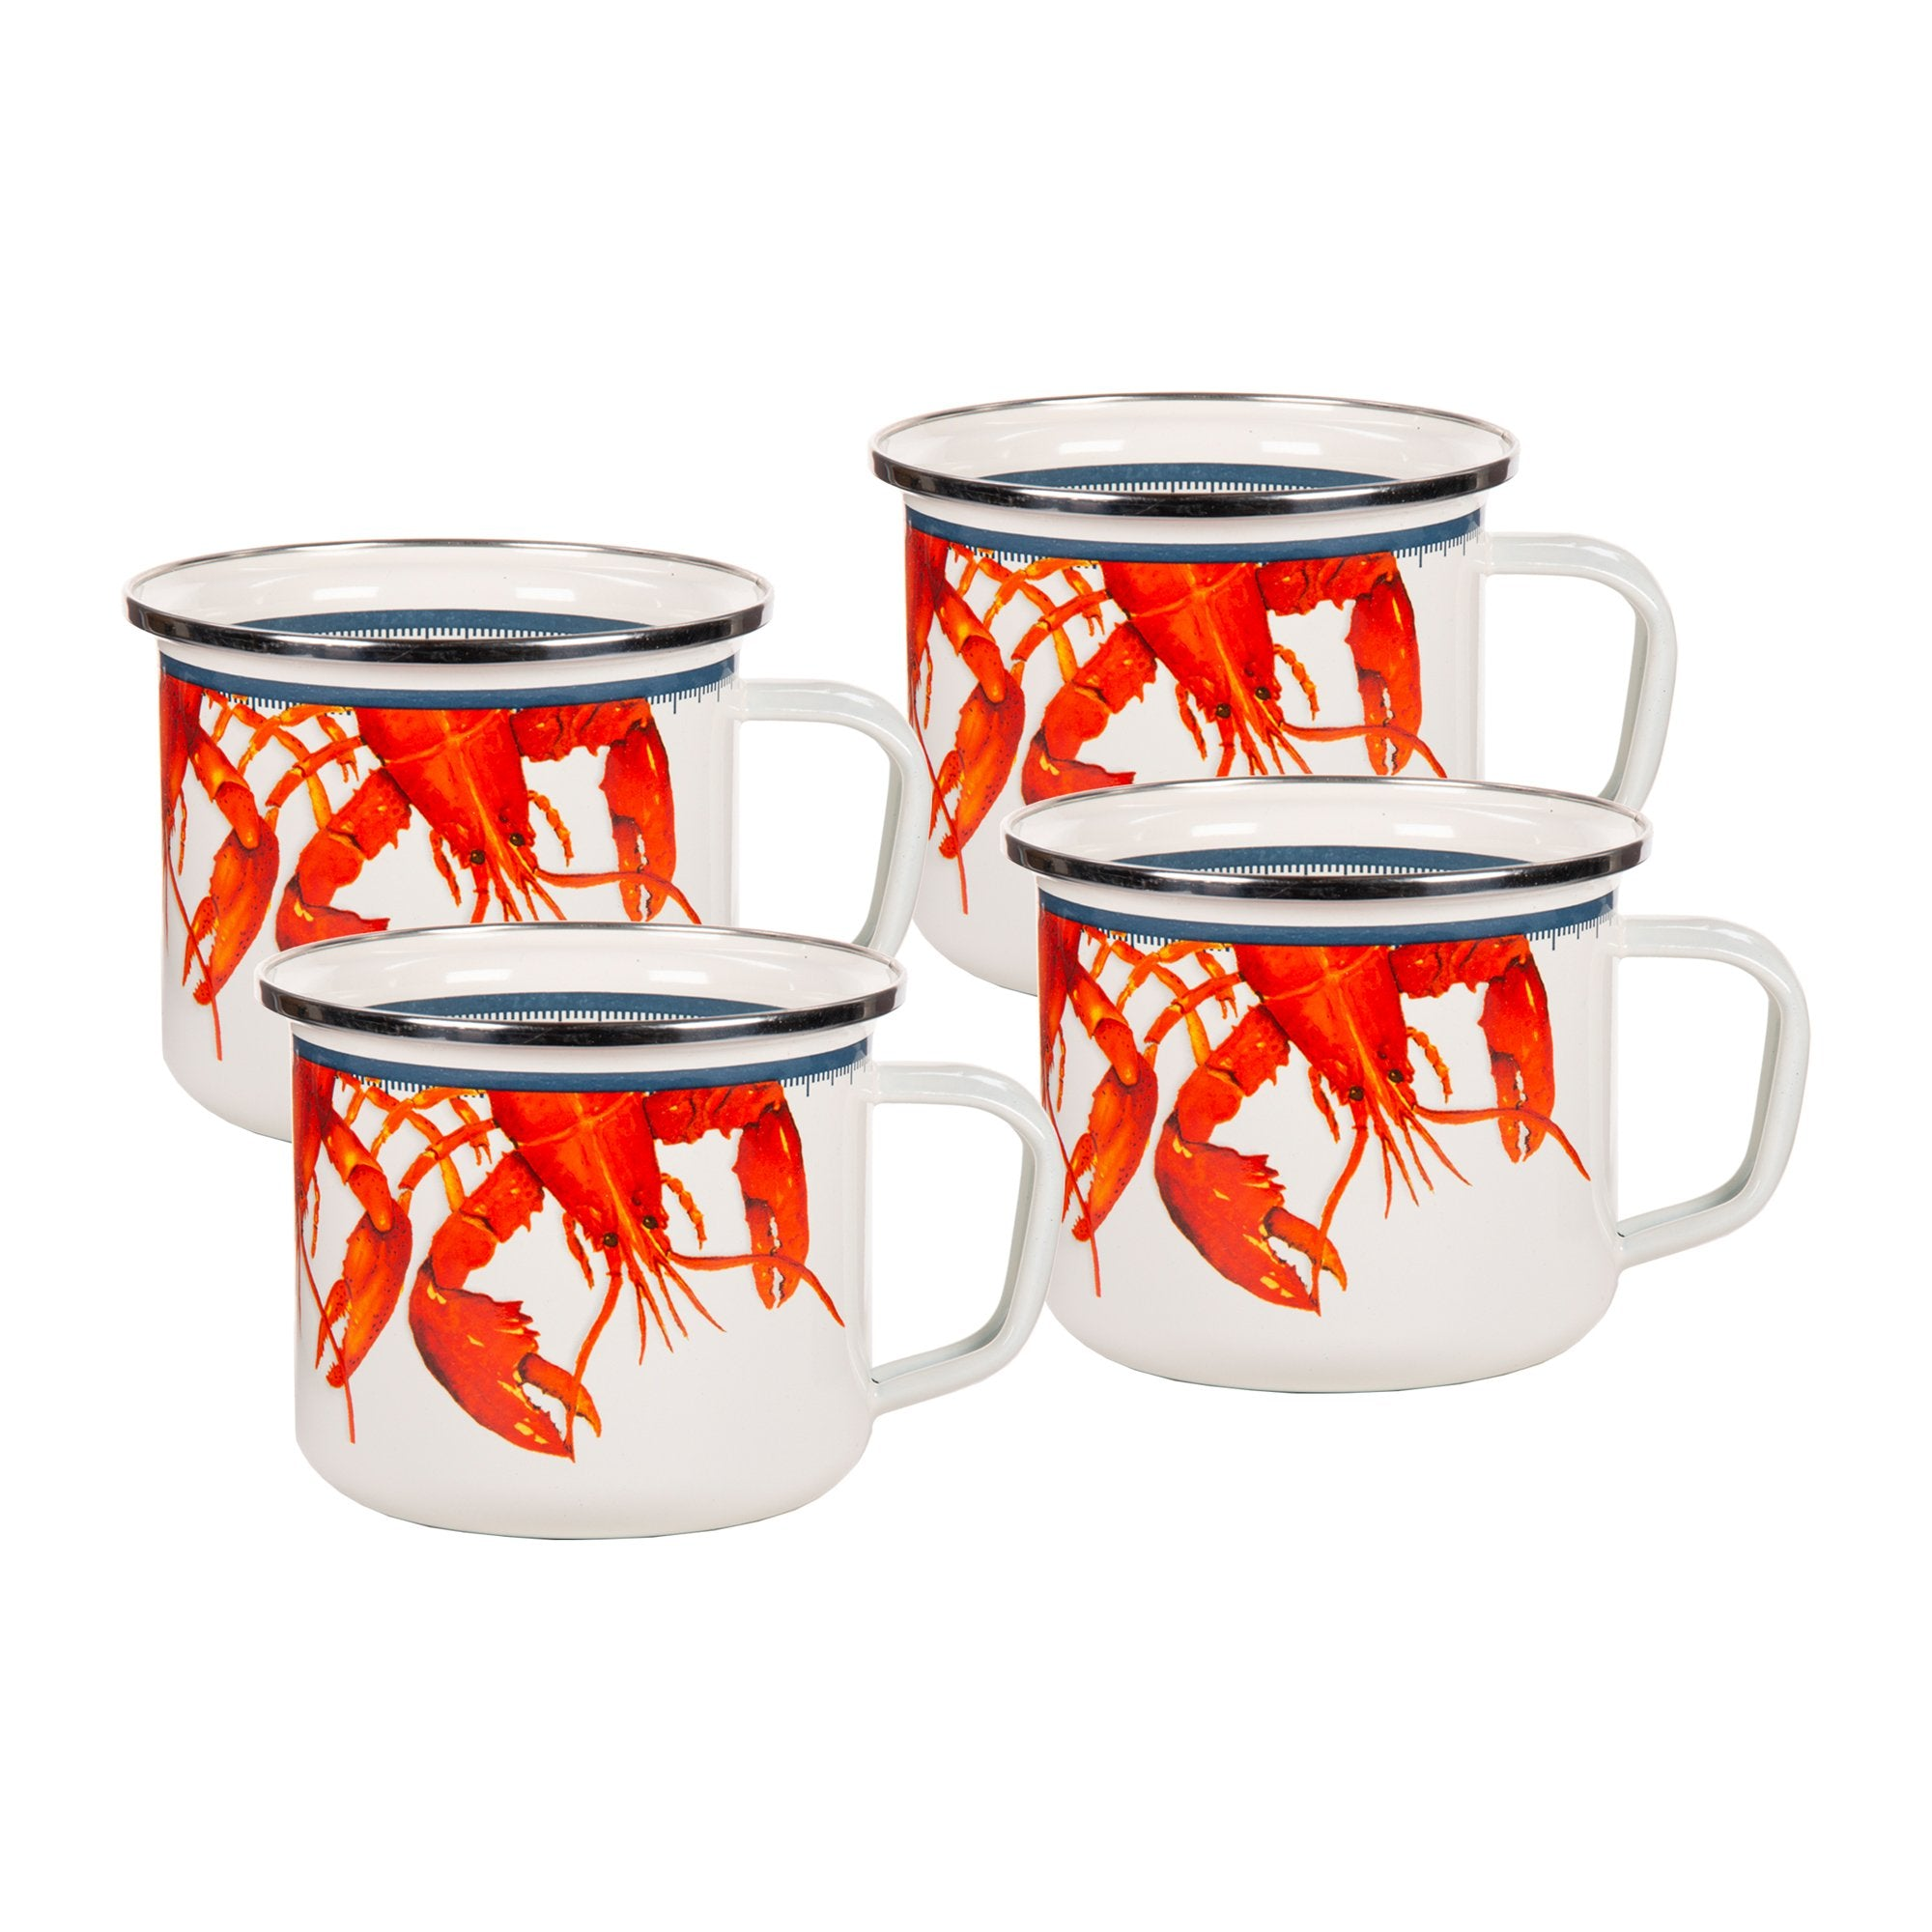 LS28S4- Set of 4 - Lobster - Enamelware - Grande Mugs by Golden Rabbit